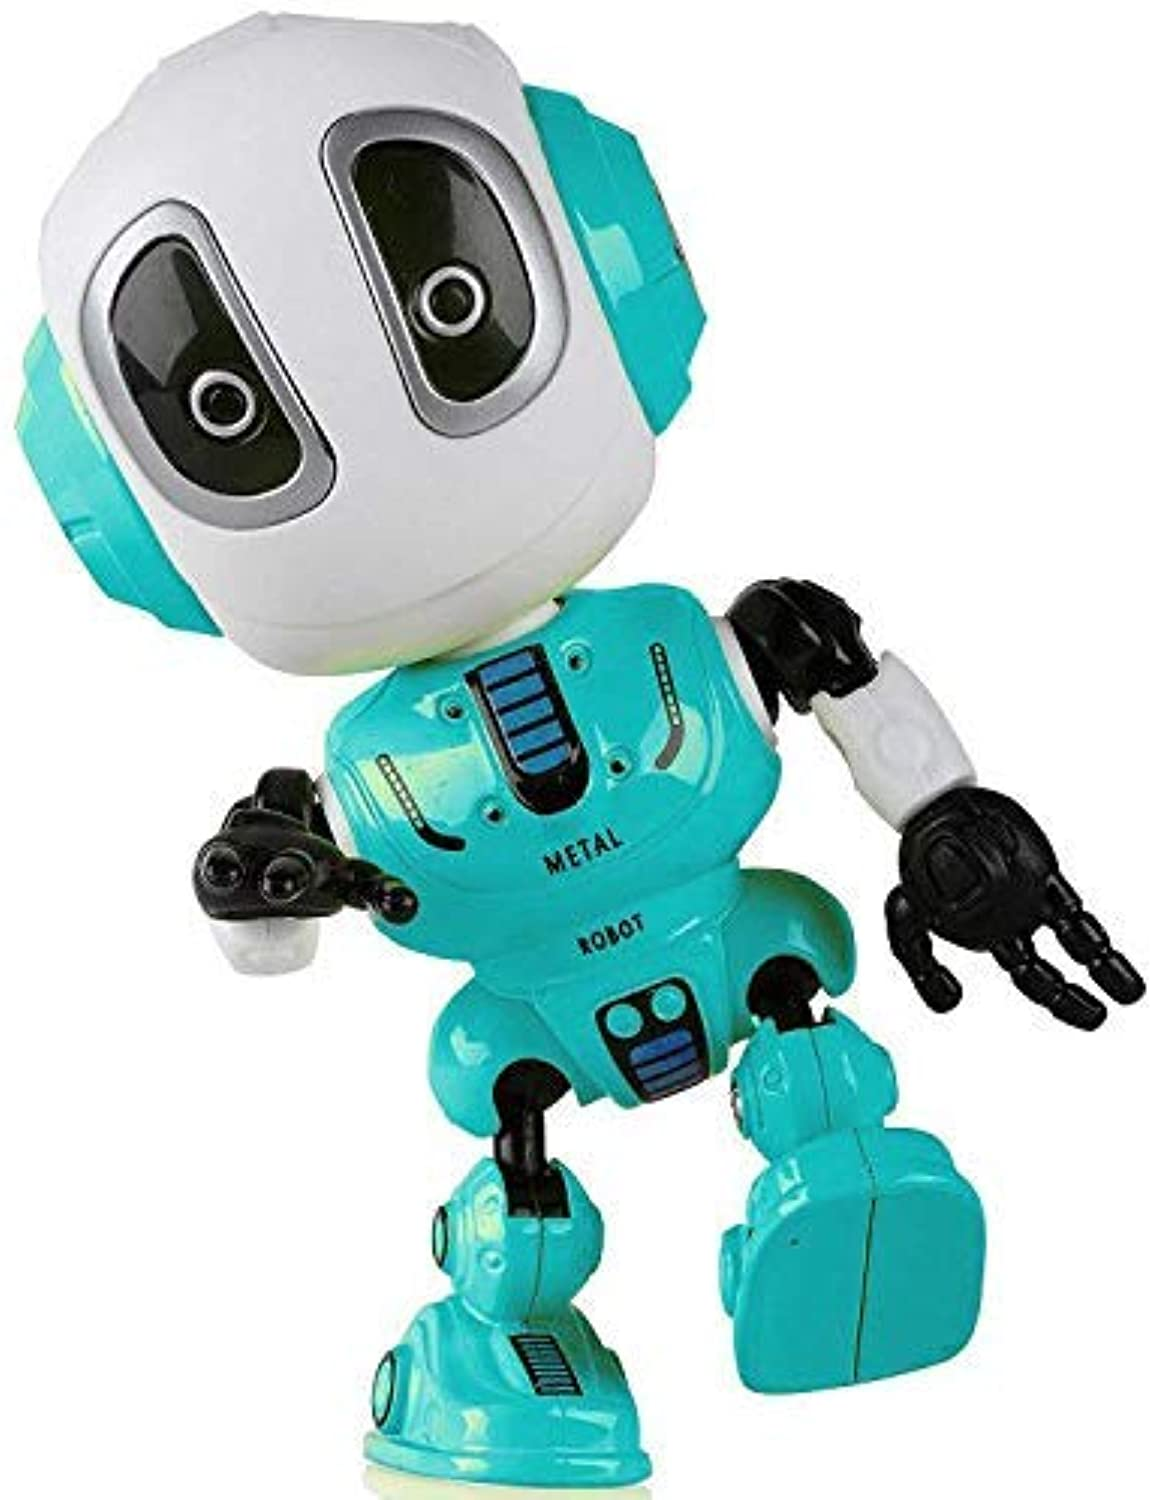 Elflight Talking Robot Kids Toys,Metal Mini Robot Body Record Toy for Boy and Girl Gift (bluee)